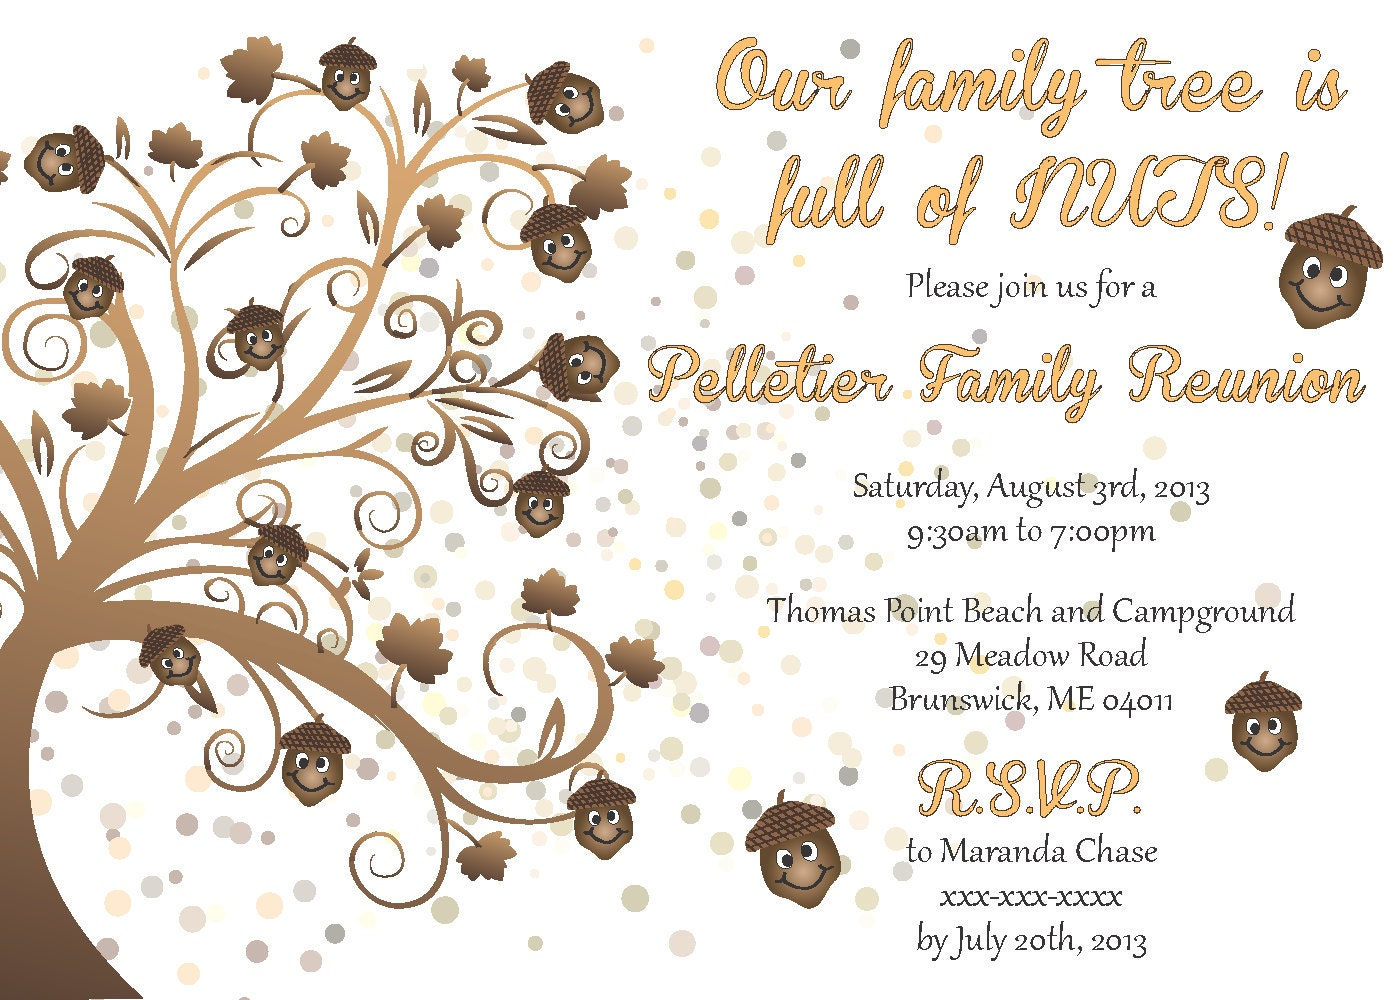 family reunion invitation by littlebopress on etsy